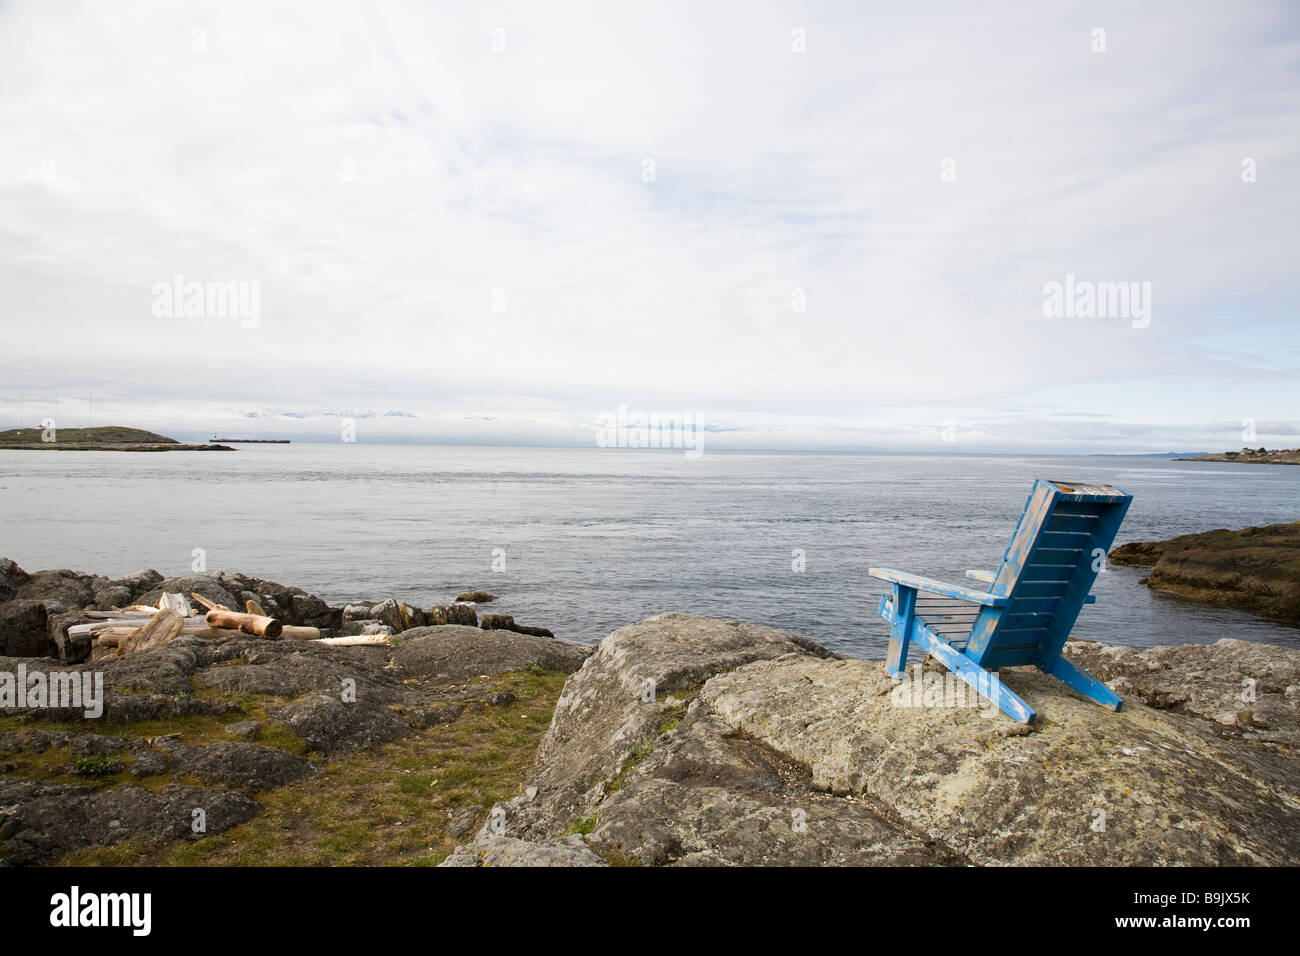 A lawn chair sits atop a rock outcrop overlooking the ocean on an overcast day in Victoria, British Columbia, Canada. Stock Photo